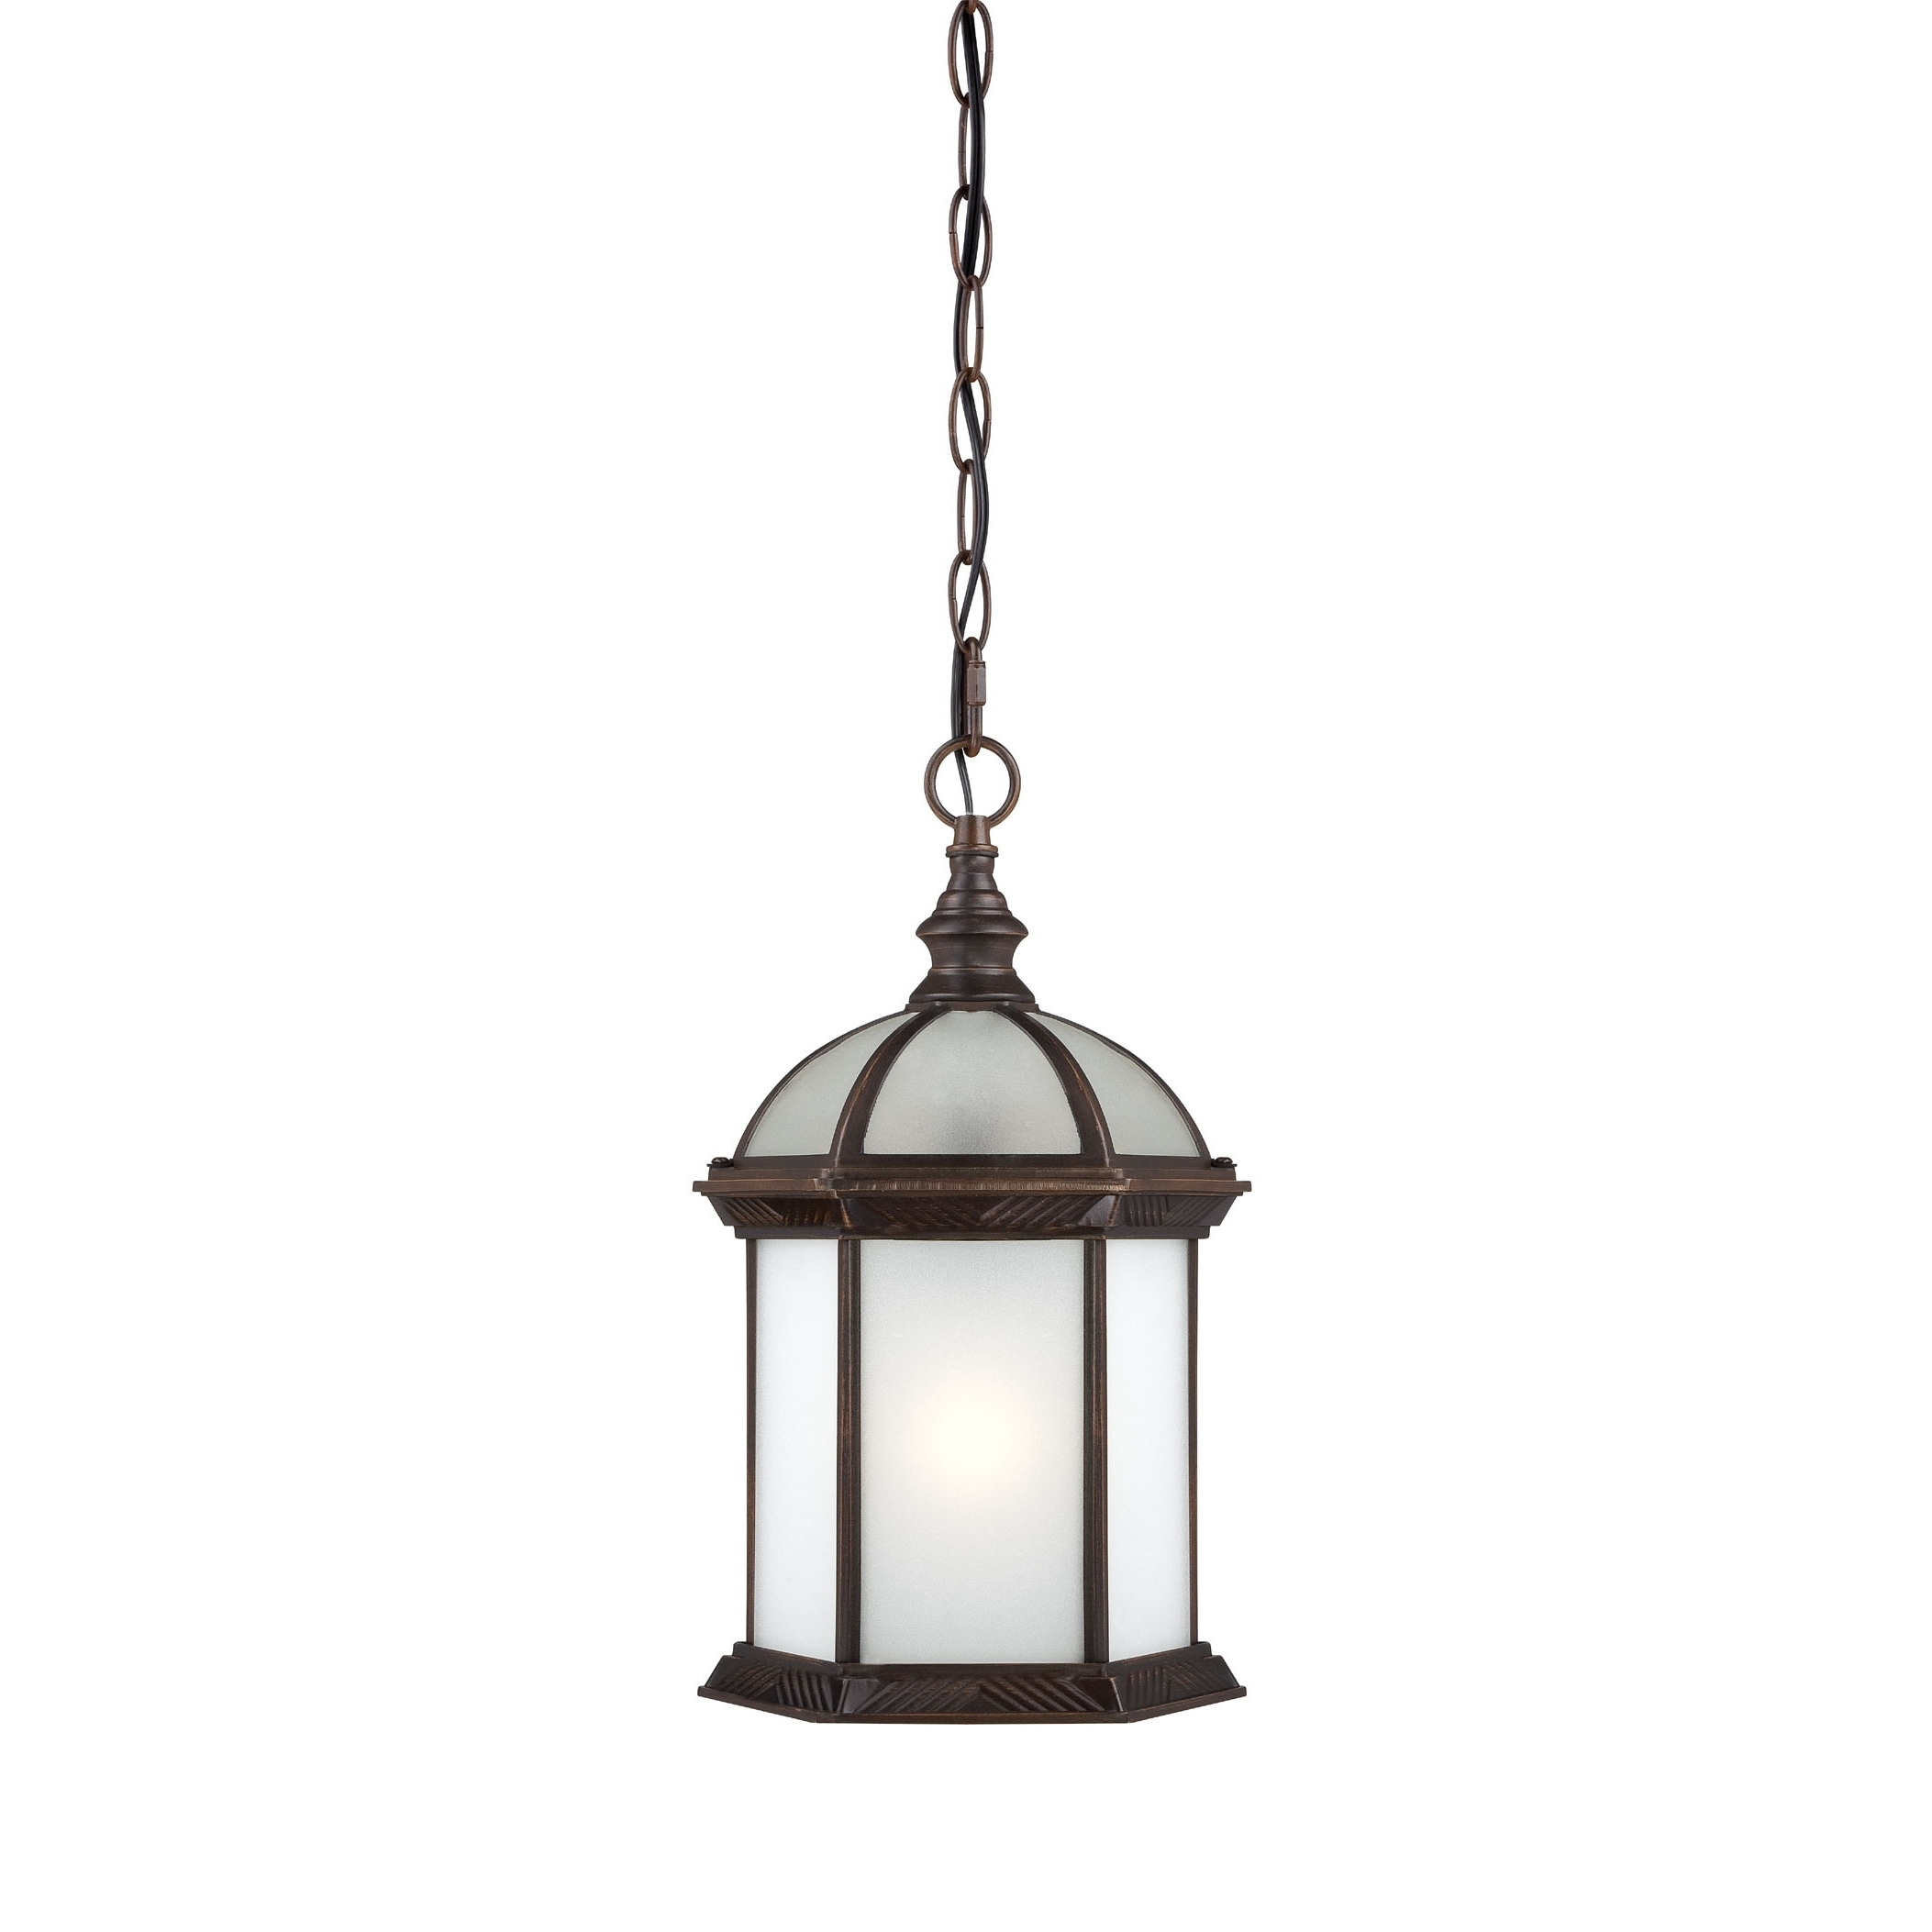 Mexican Outdoor Lighting – Outdoor Lighting Ideas Intended For Outdoor Mexican Lanterns (View 13 of 20)